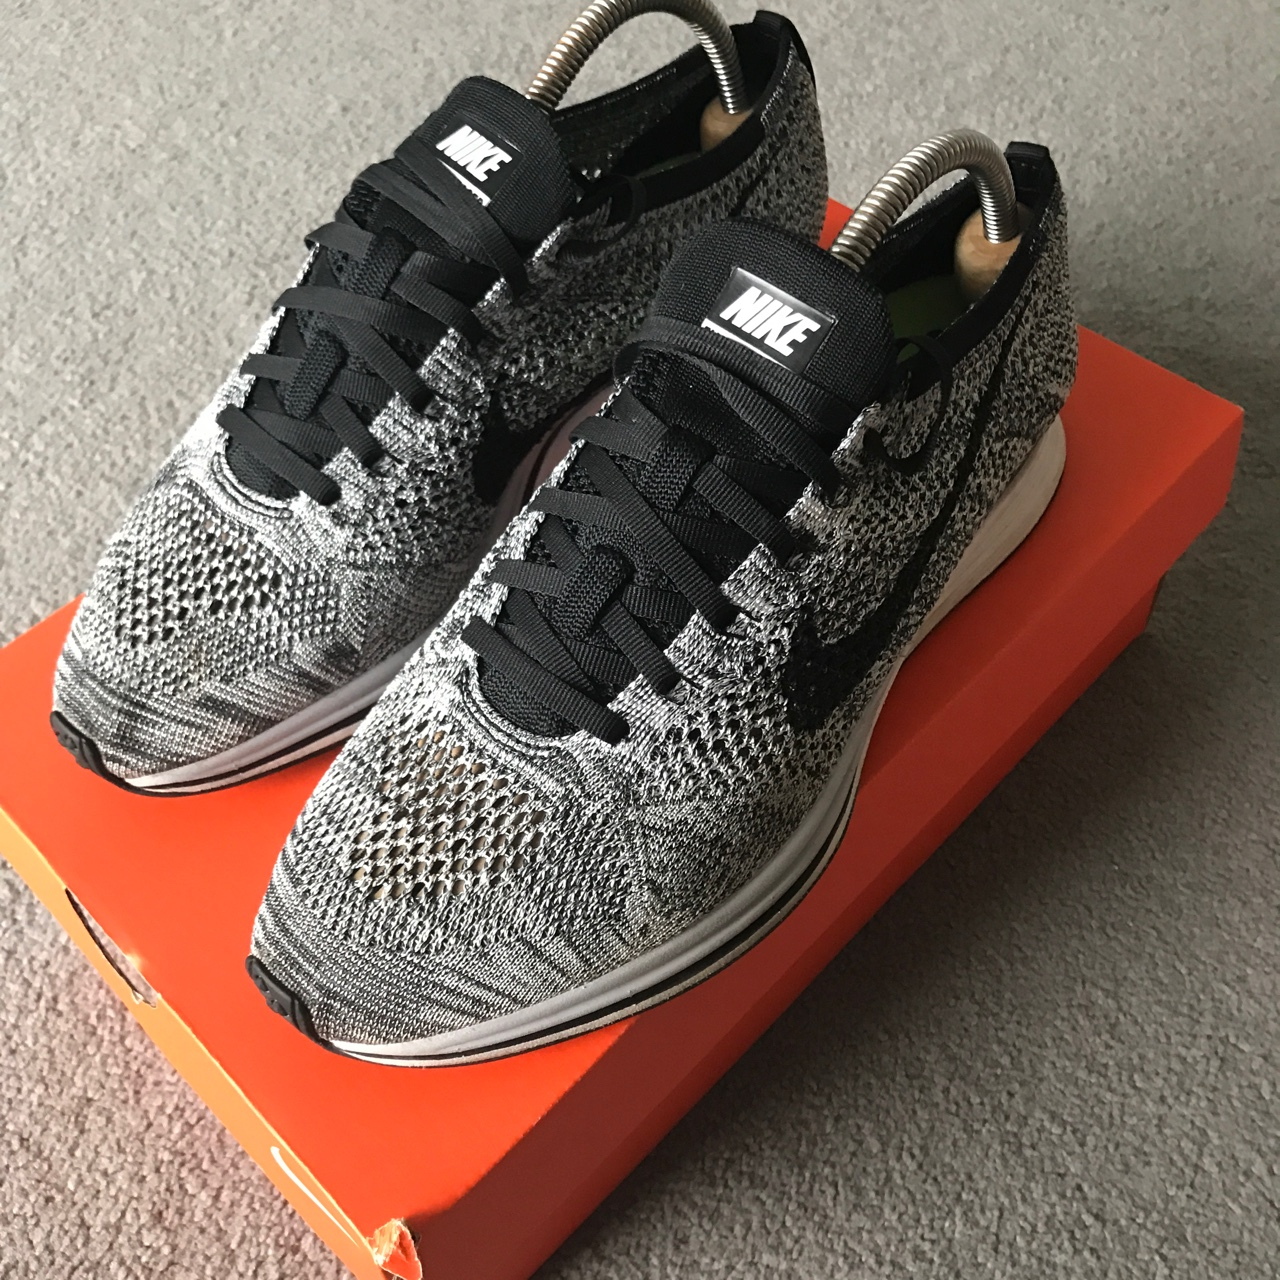 Nike Flyknit Racer limited edition